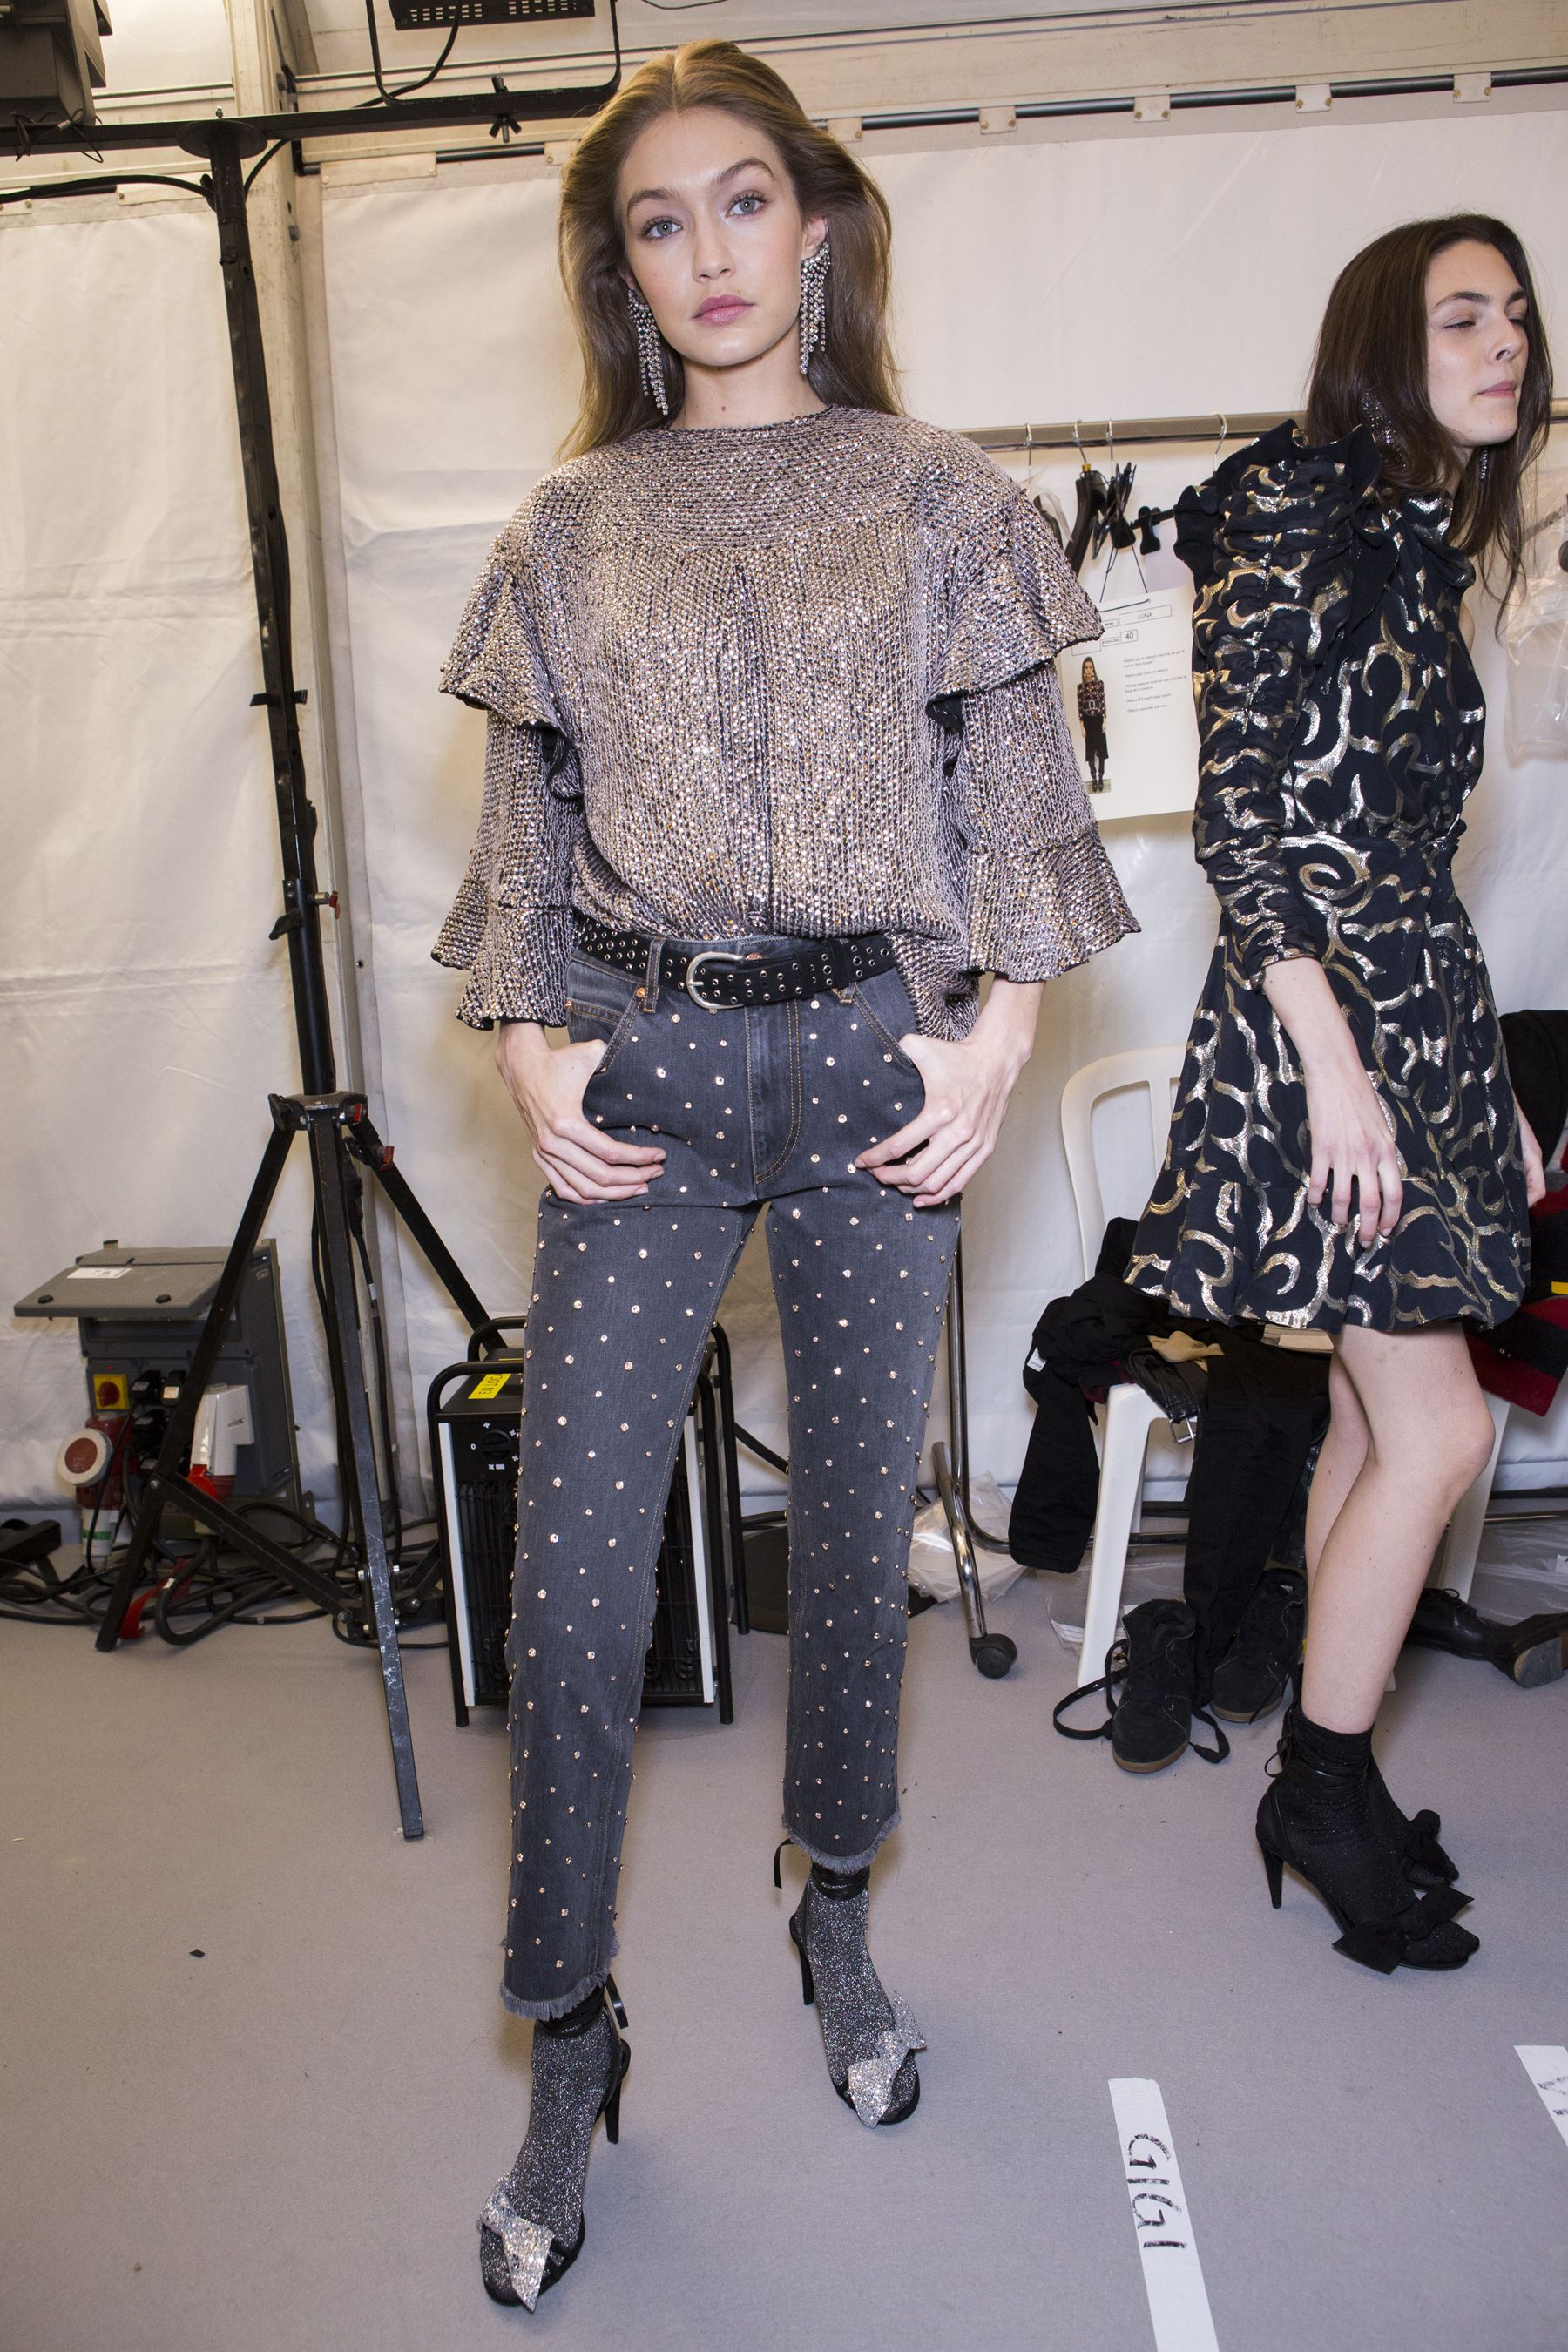 Sandi shared a backstage pic of some of the models at the Milan Fashion Week